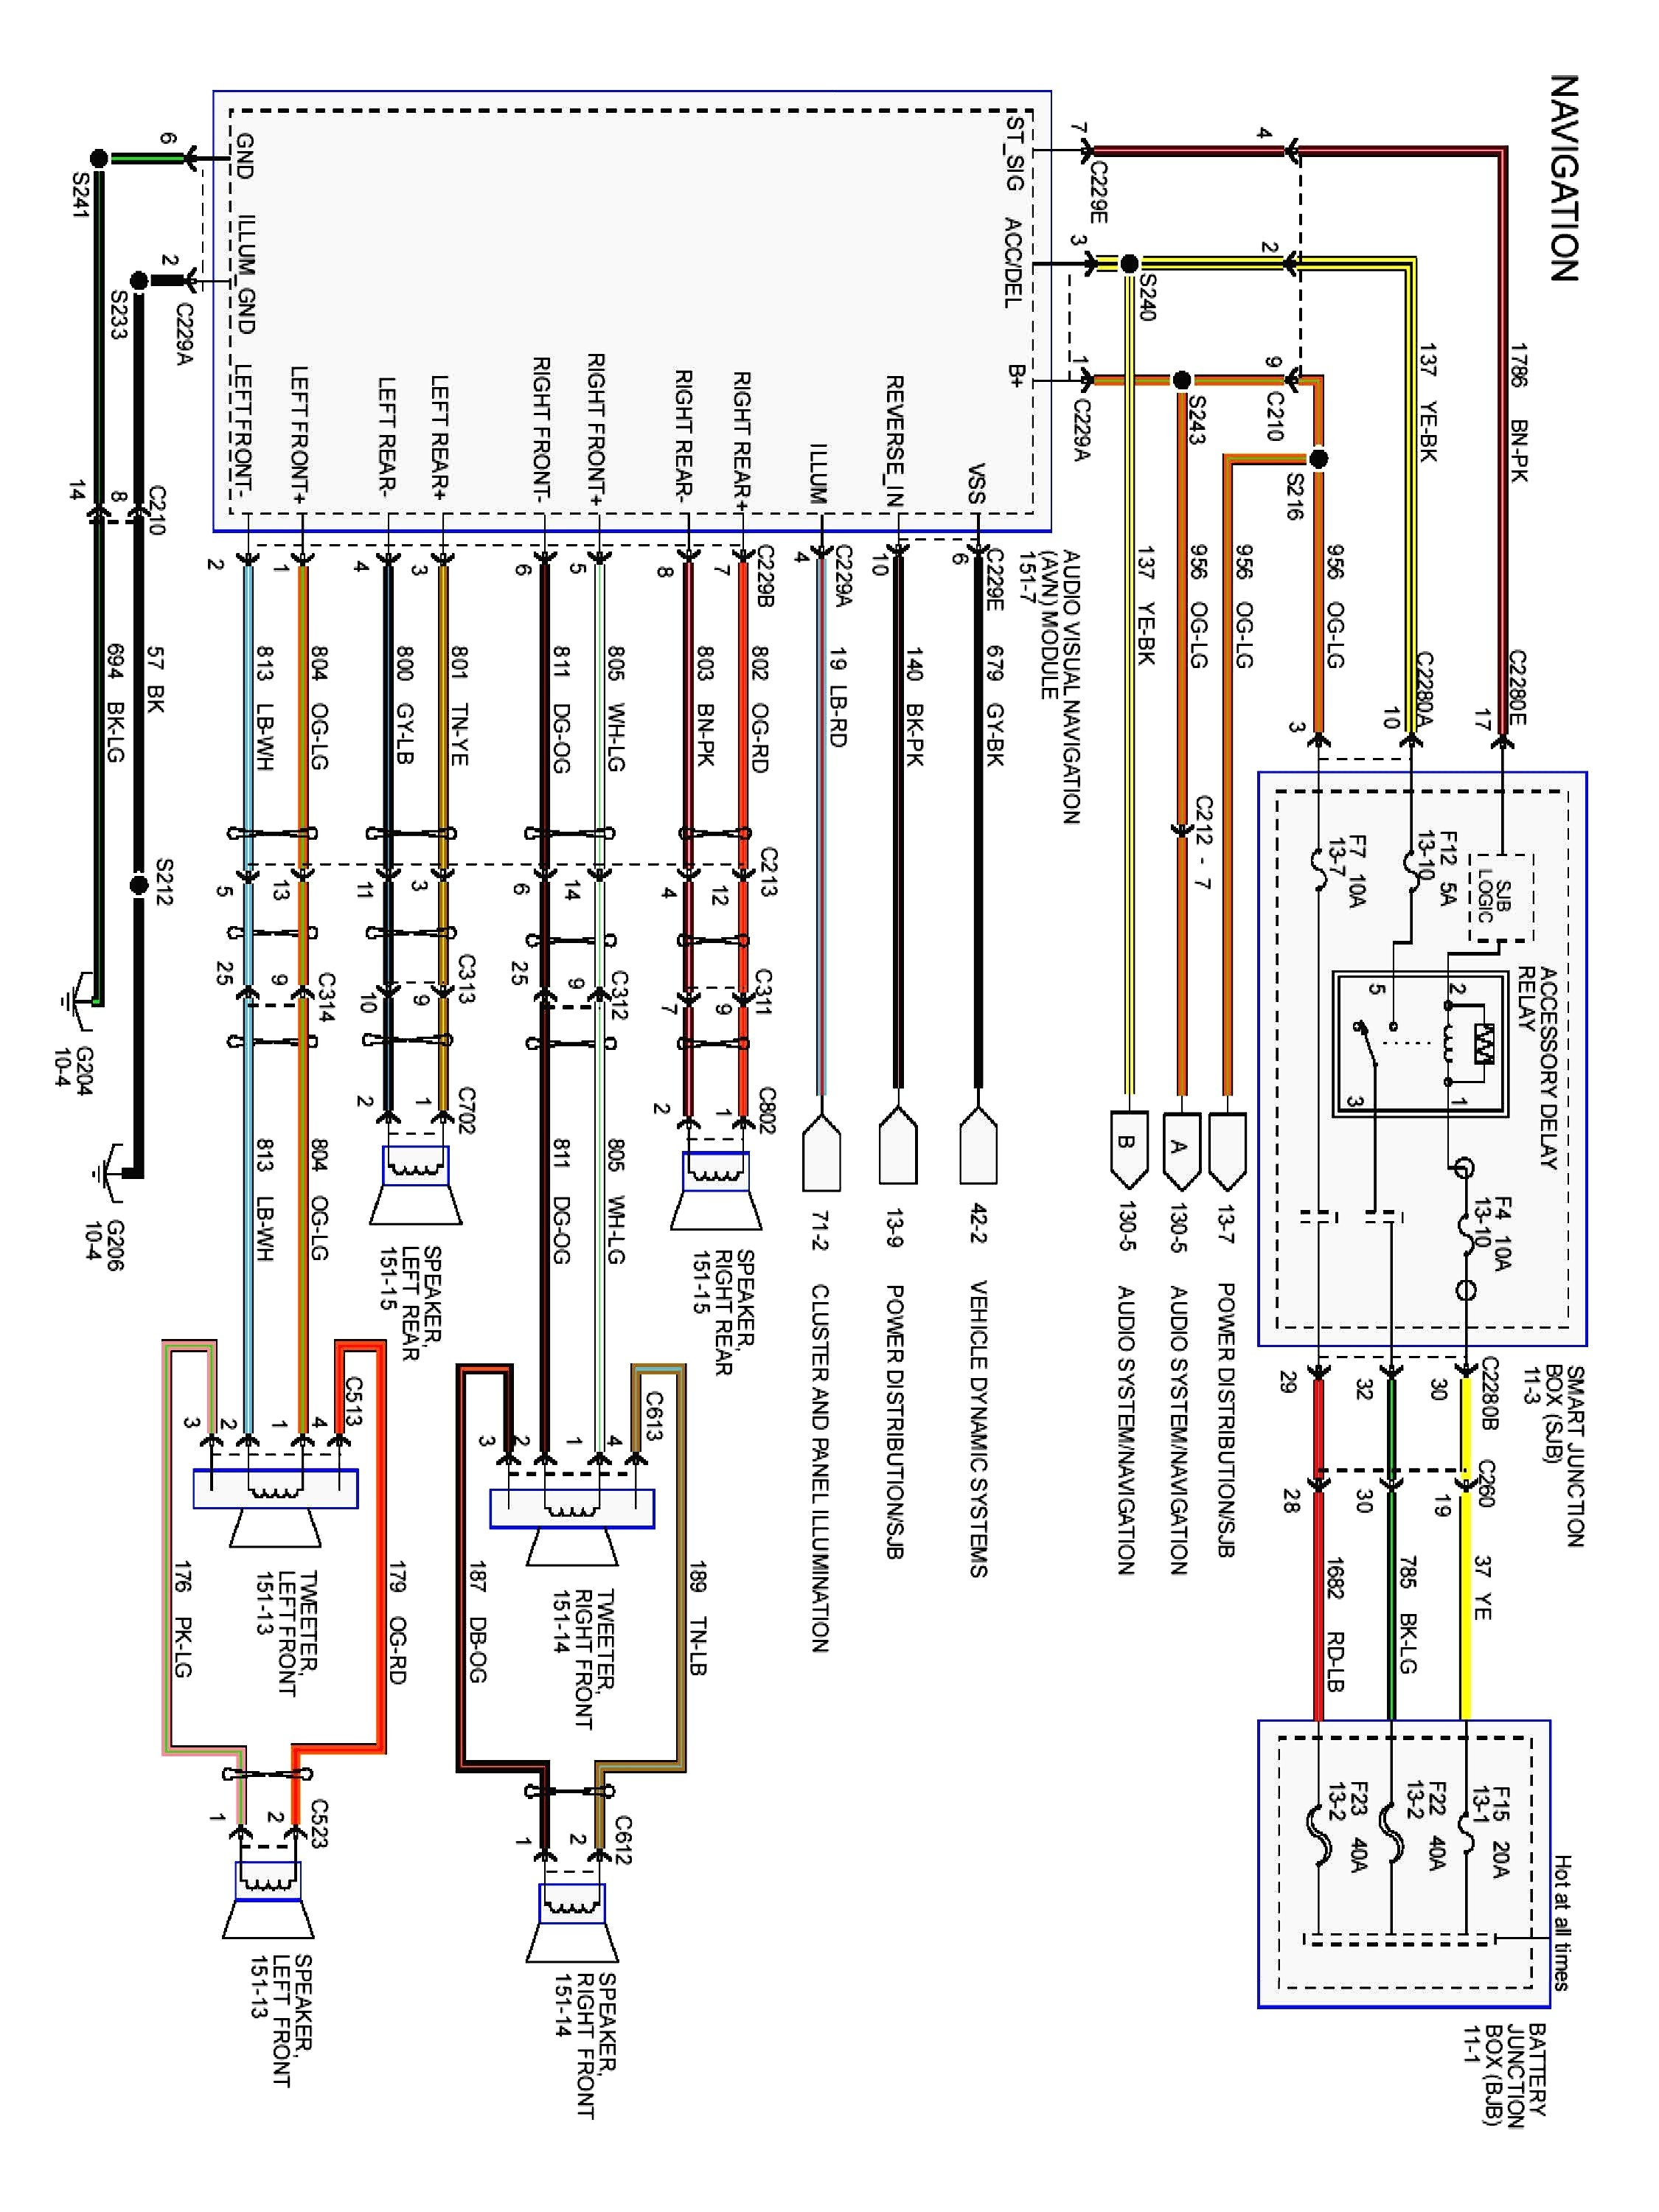 Ford E350 Radio Wiring Diagram